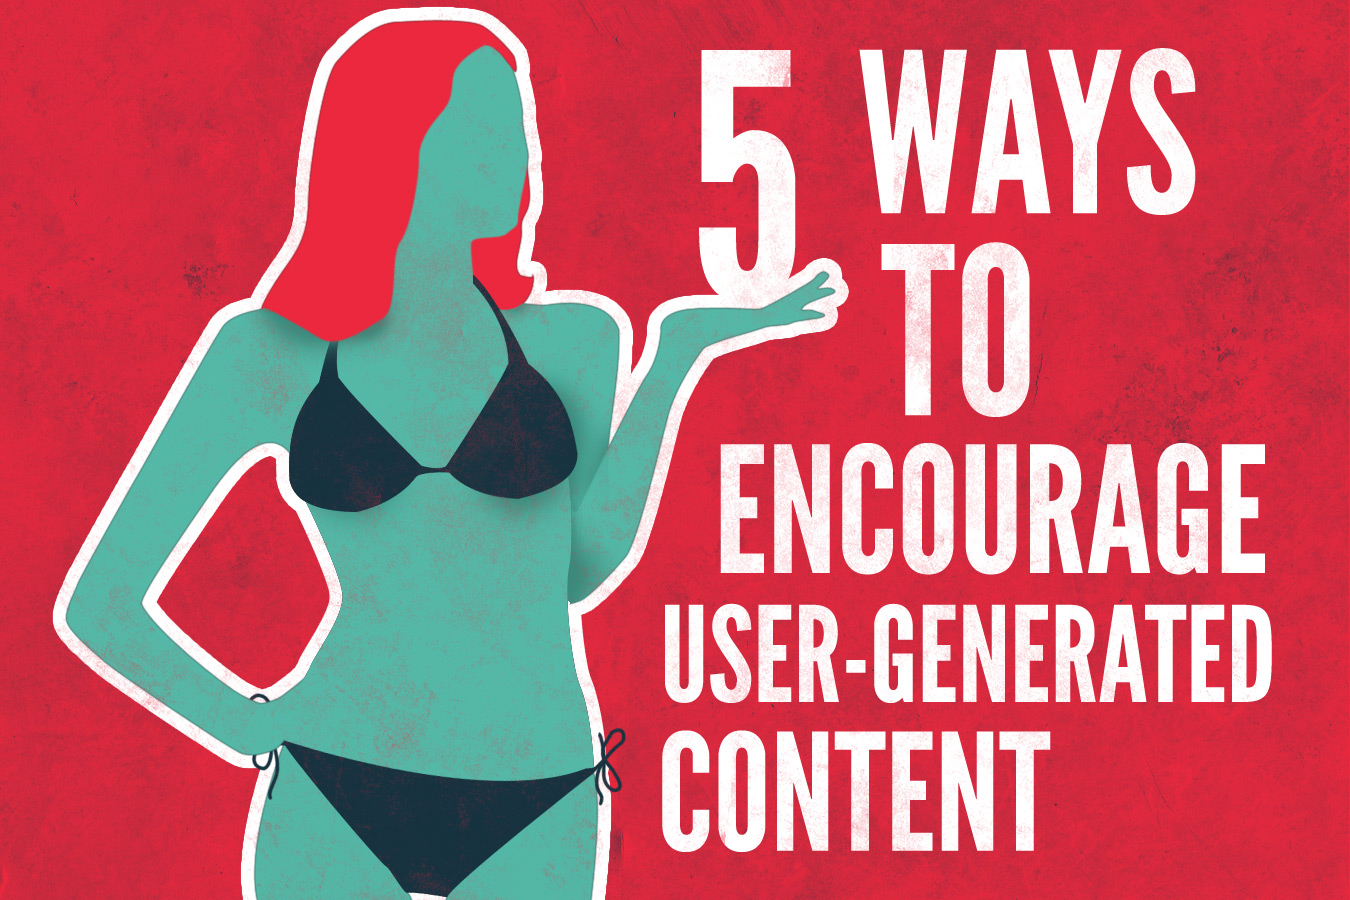 How to encourage User-Generated Content